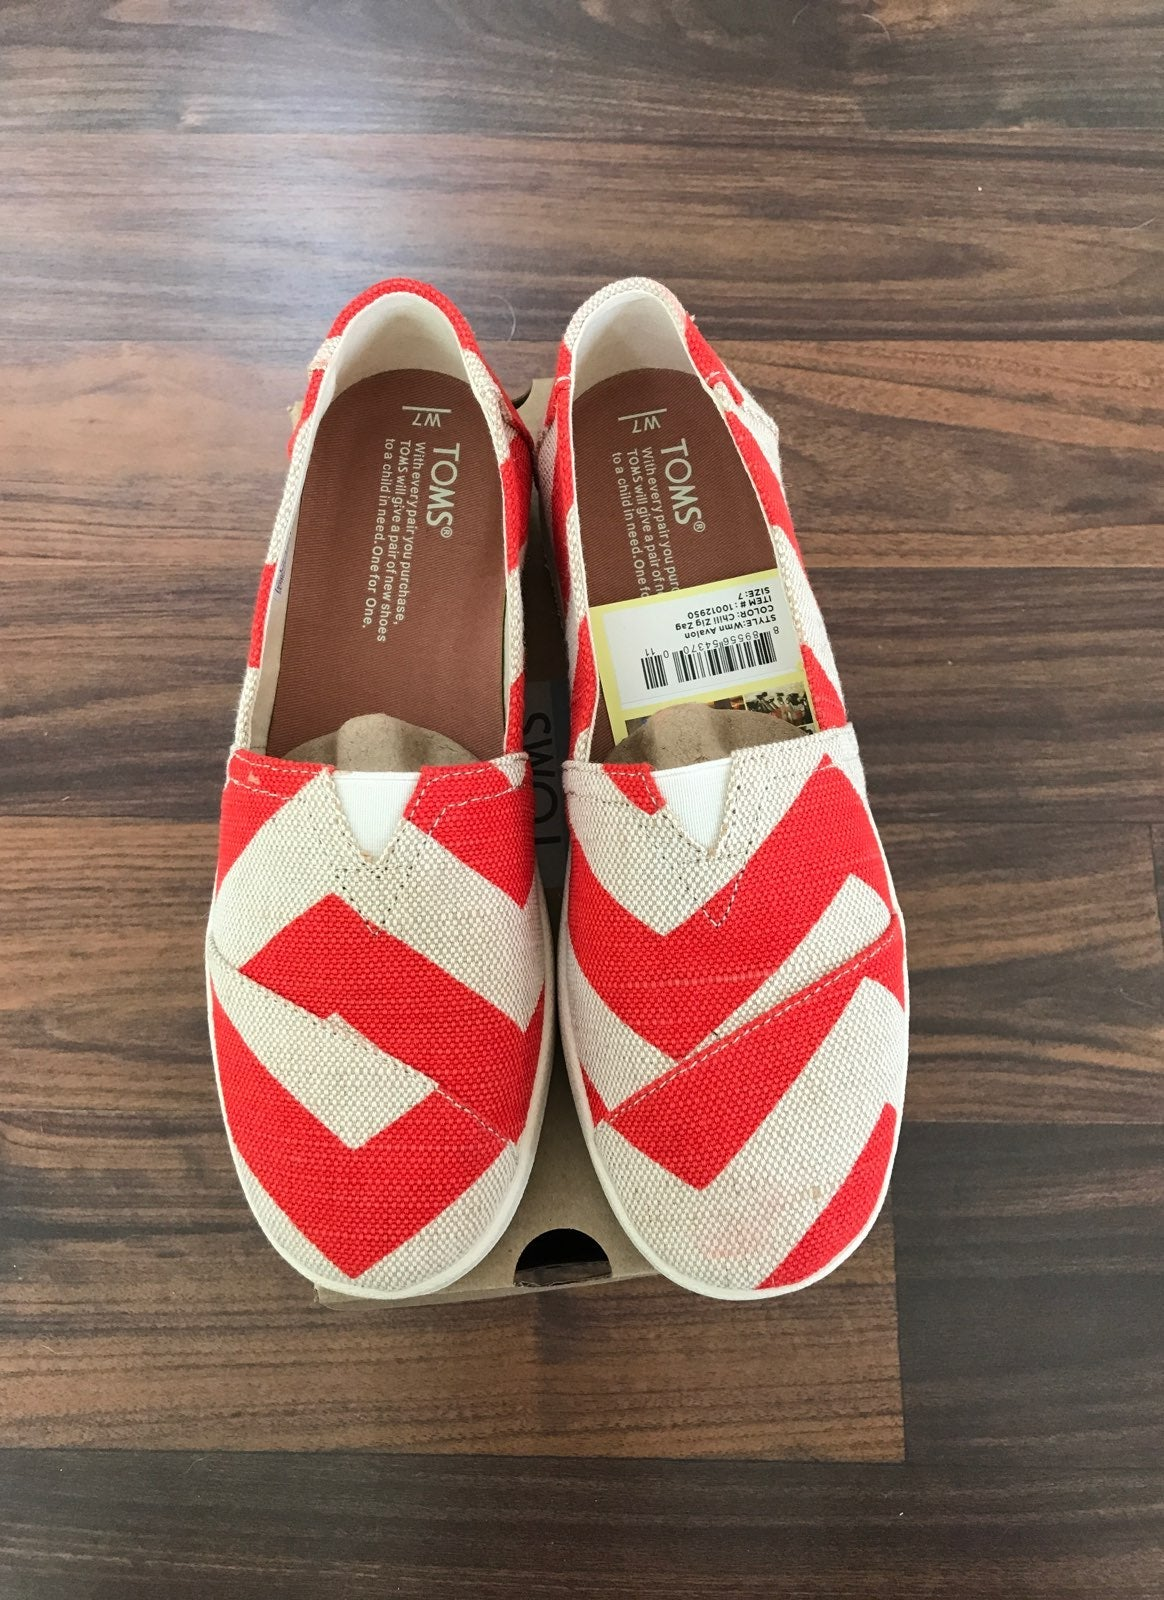 Red Stripped Toms Shoes